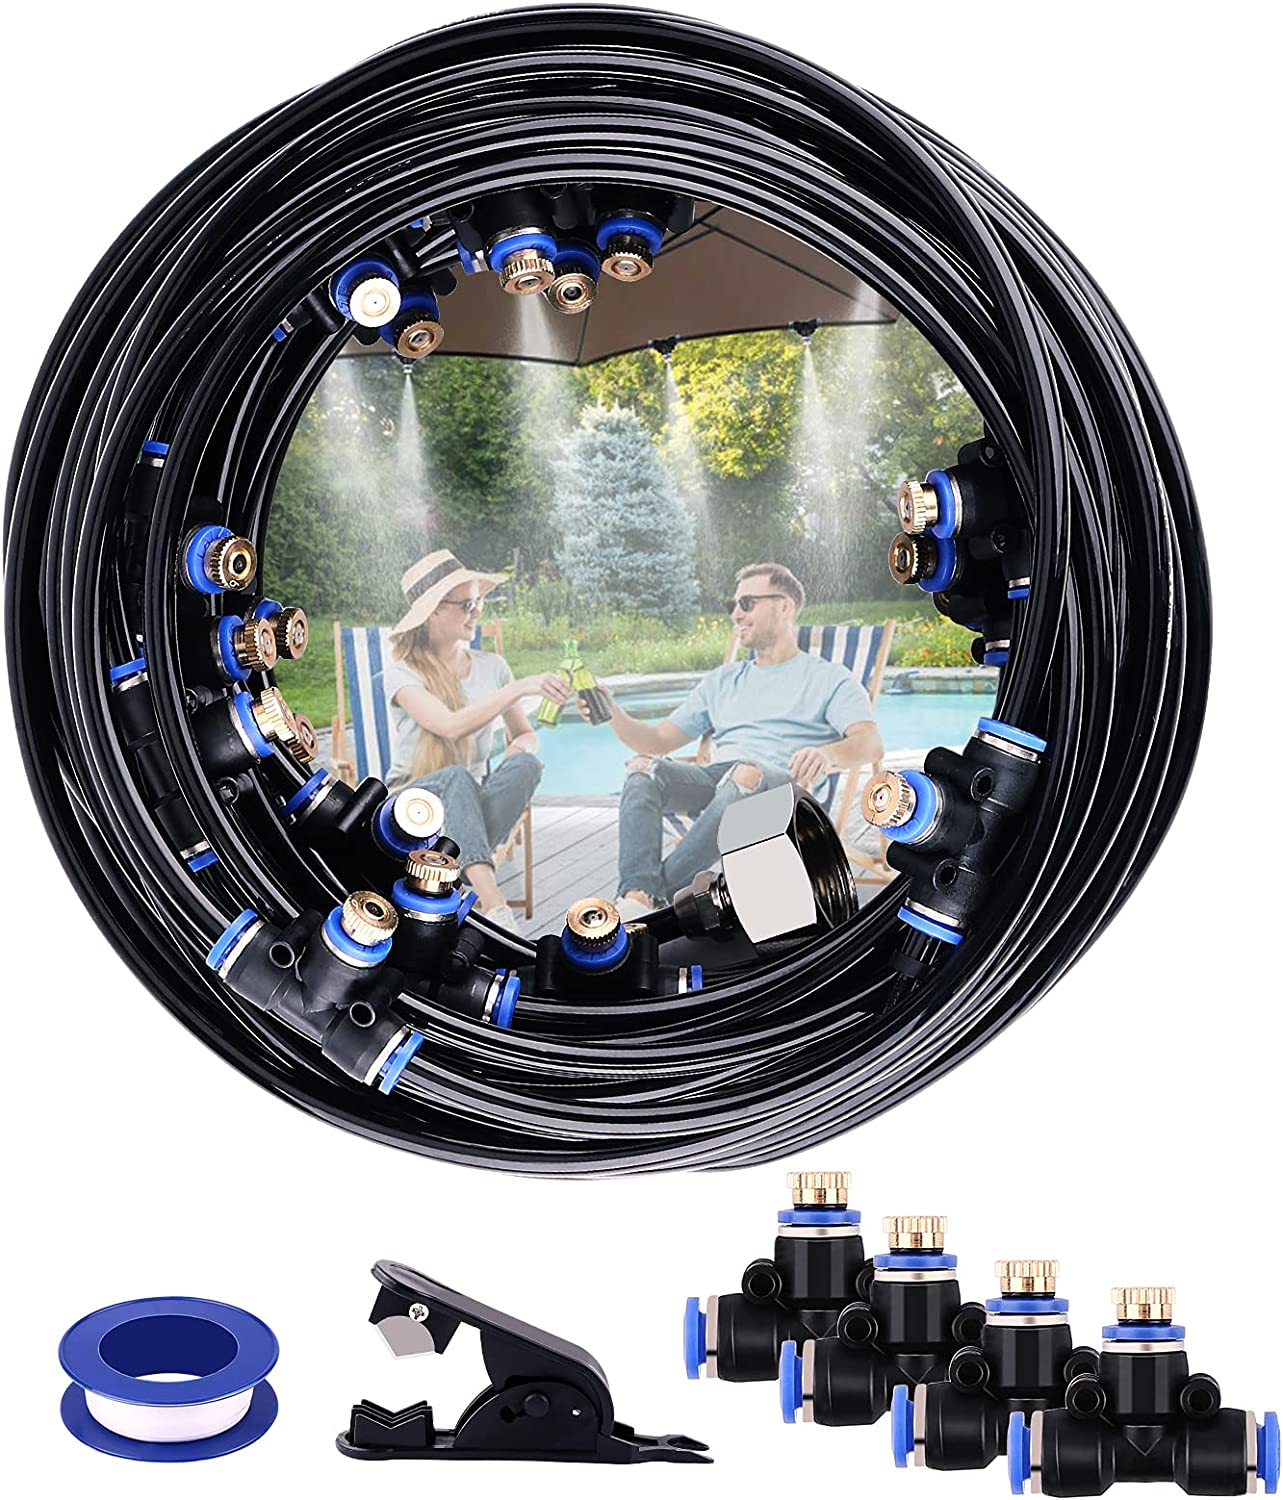 AGPTEK Mist Cooling System 65.6Ft Misting Line with 23 T-Joint Mist Nozzles, 20 Cable Ties and 3/4 Inch Brass Adapter, Outdoor Misting Cooling System for Patio, Garden, Lawn, Greenhouse, Umbrellas